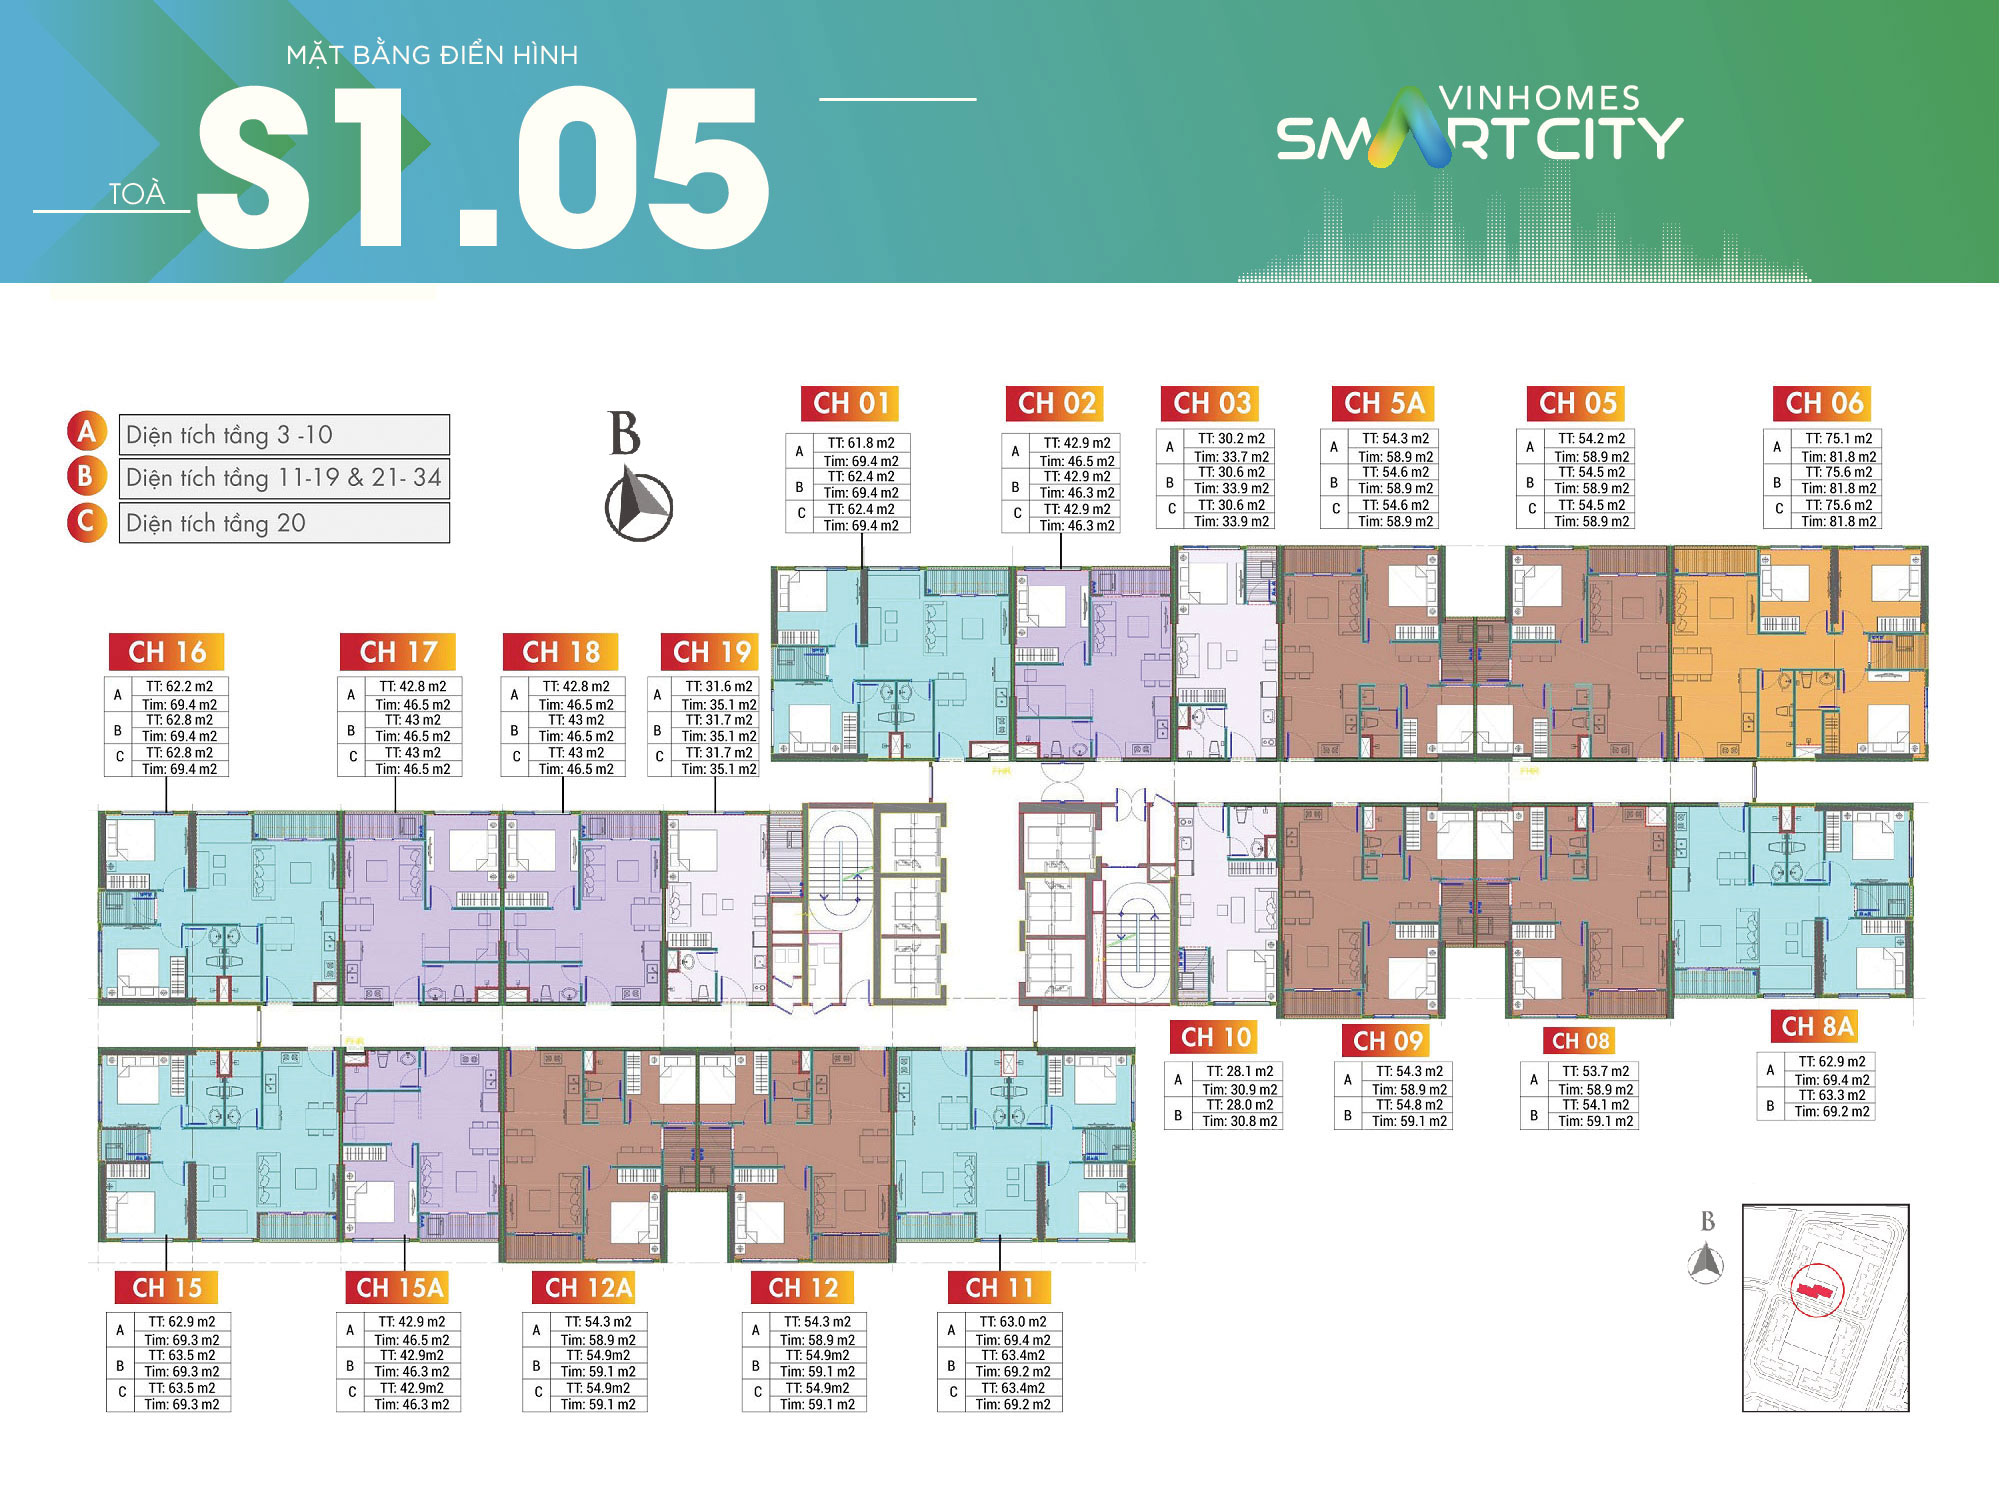 mat-bang-tang-3-34-toa-s105-vinhomes-smart-city